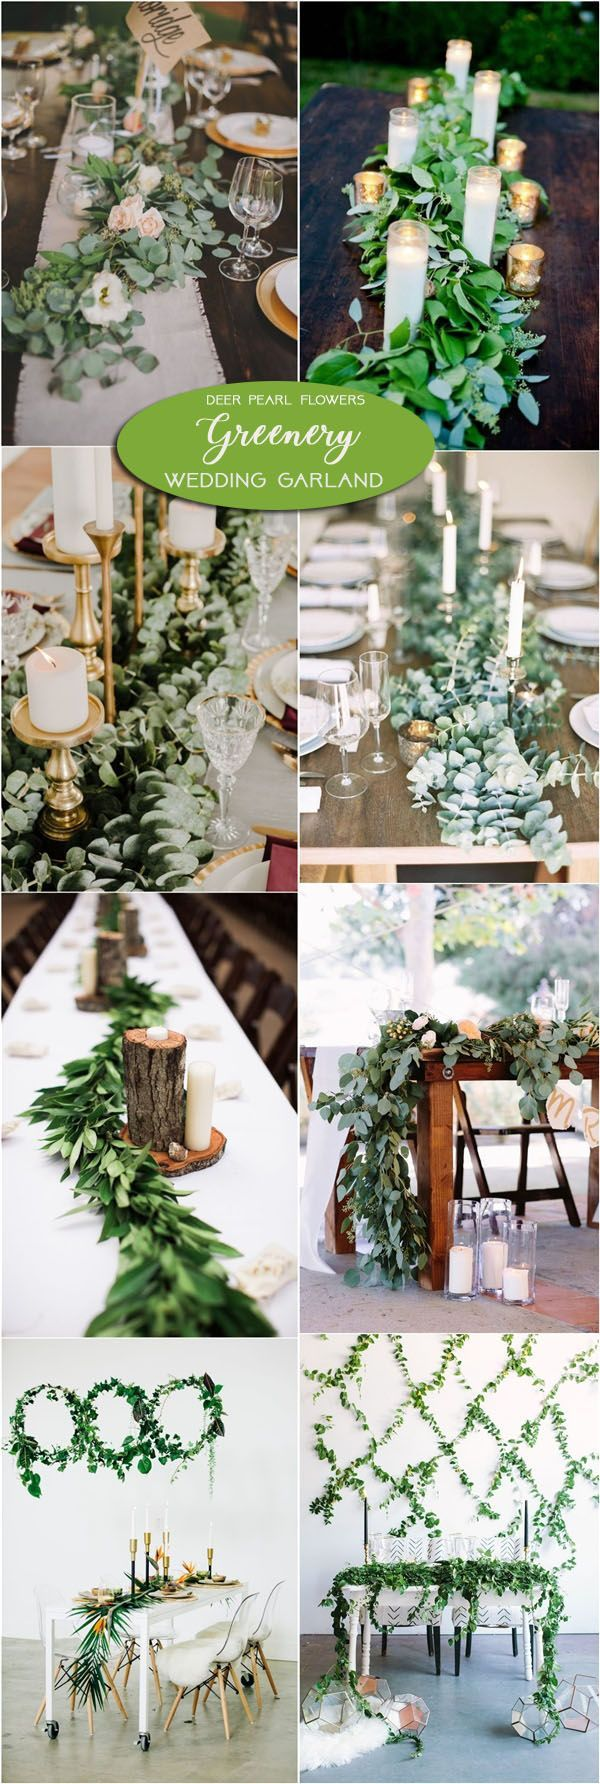 The best greenery centerpiece ideas on pinterest